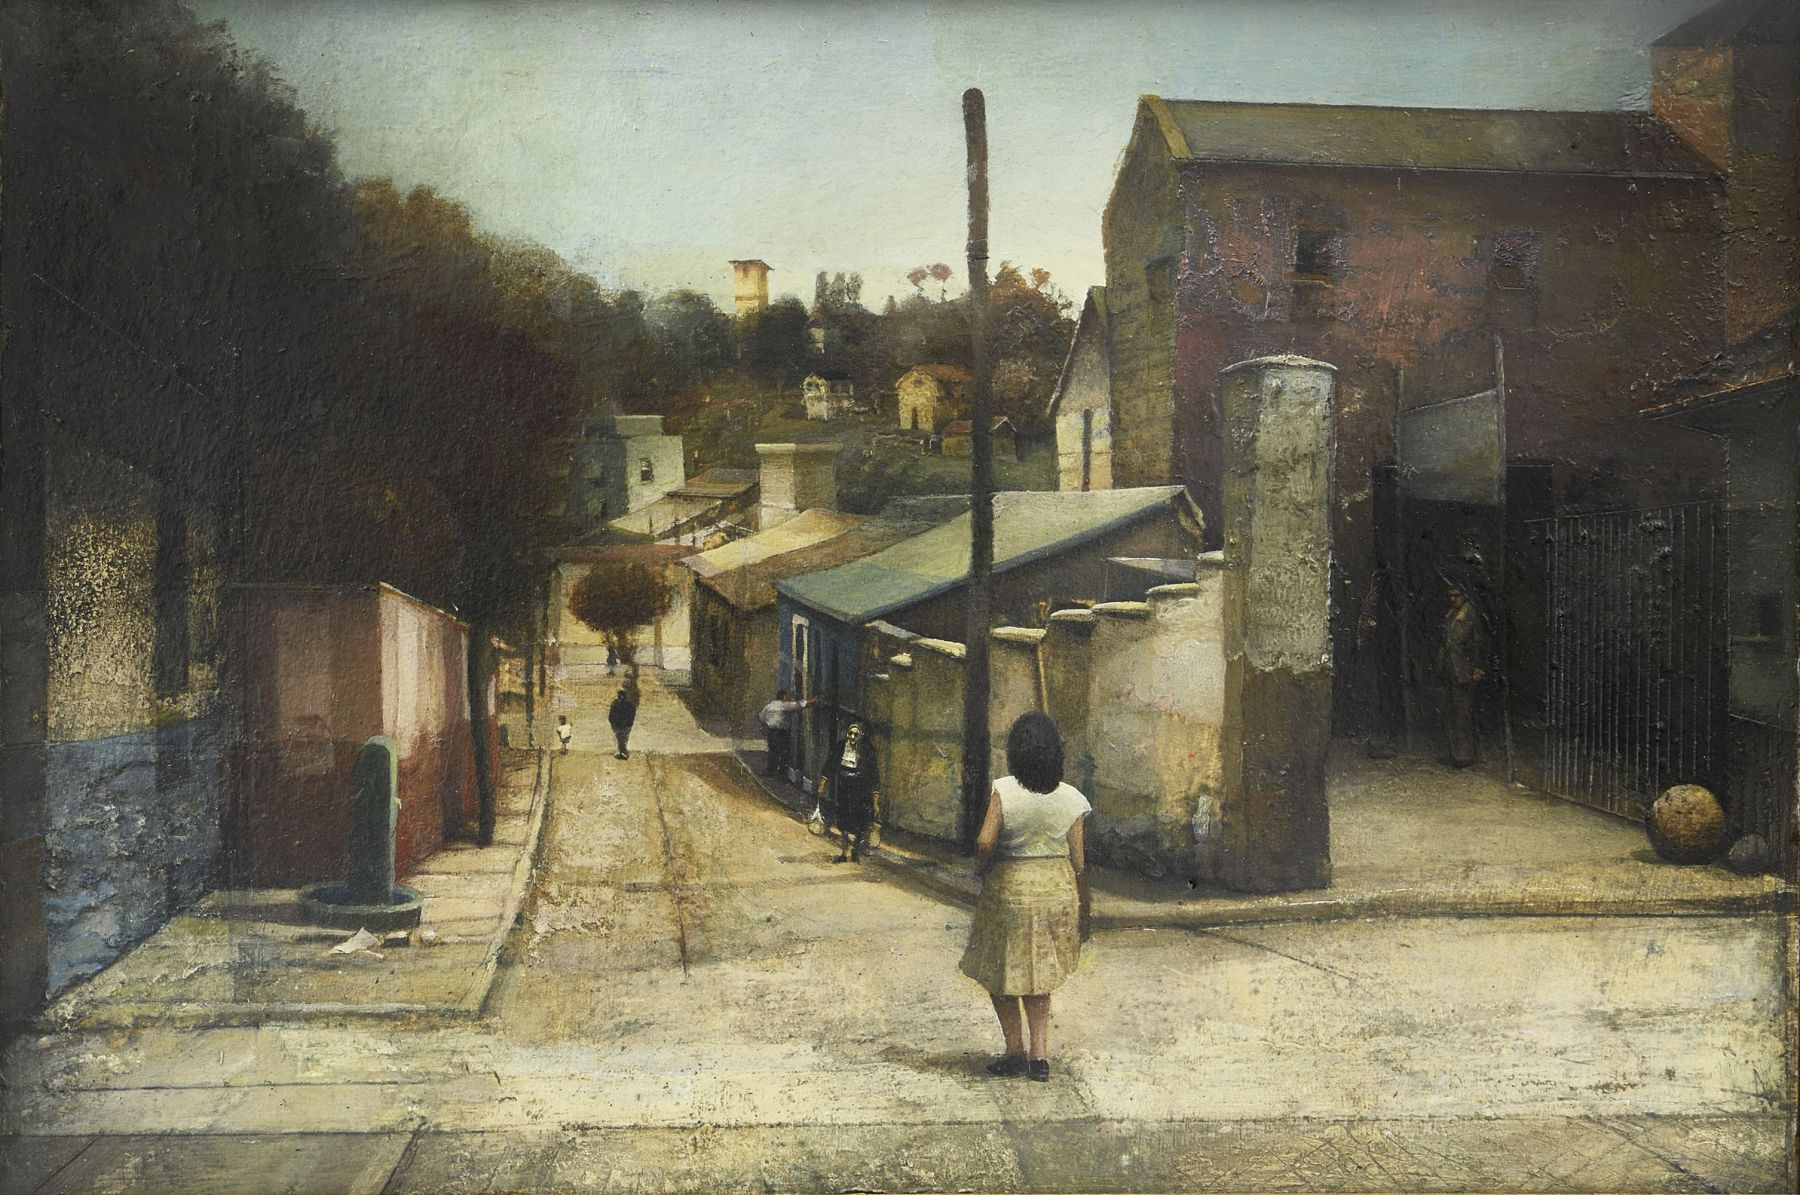 gregory gillespie, Street in Spain, 1964 oil and mixed media on wood 7 1/4 x 10 3/4 inches